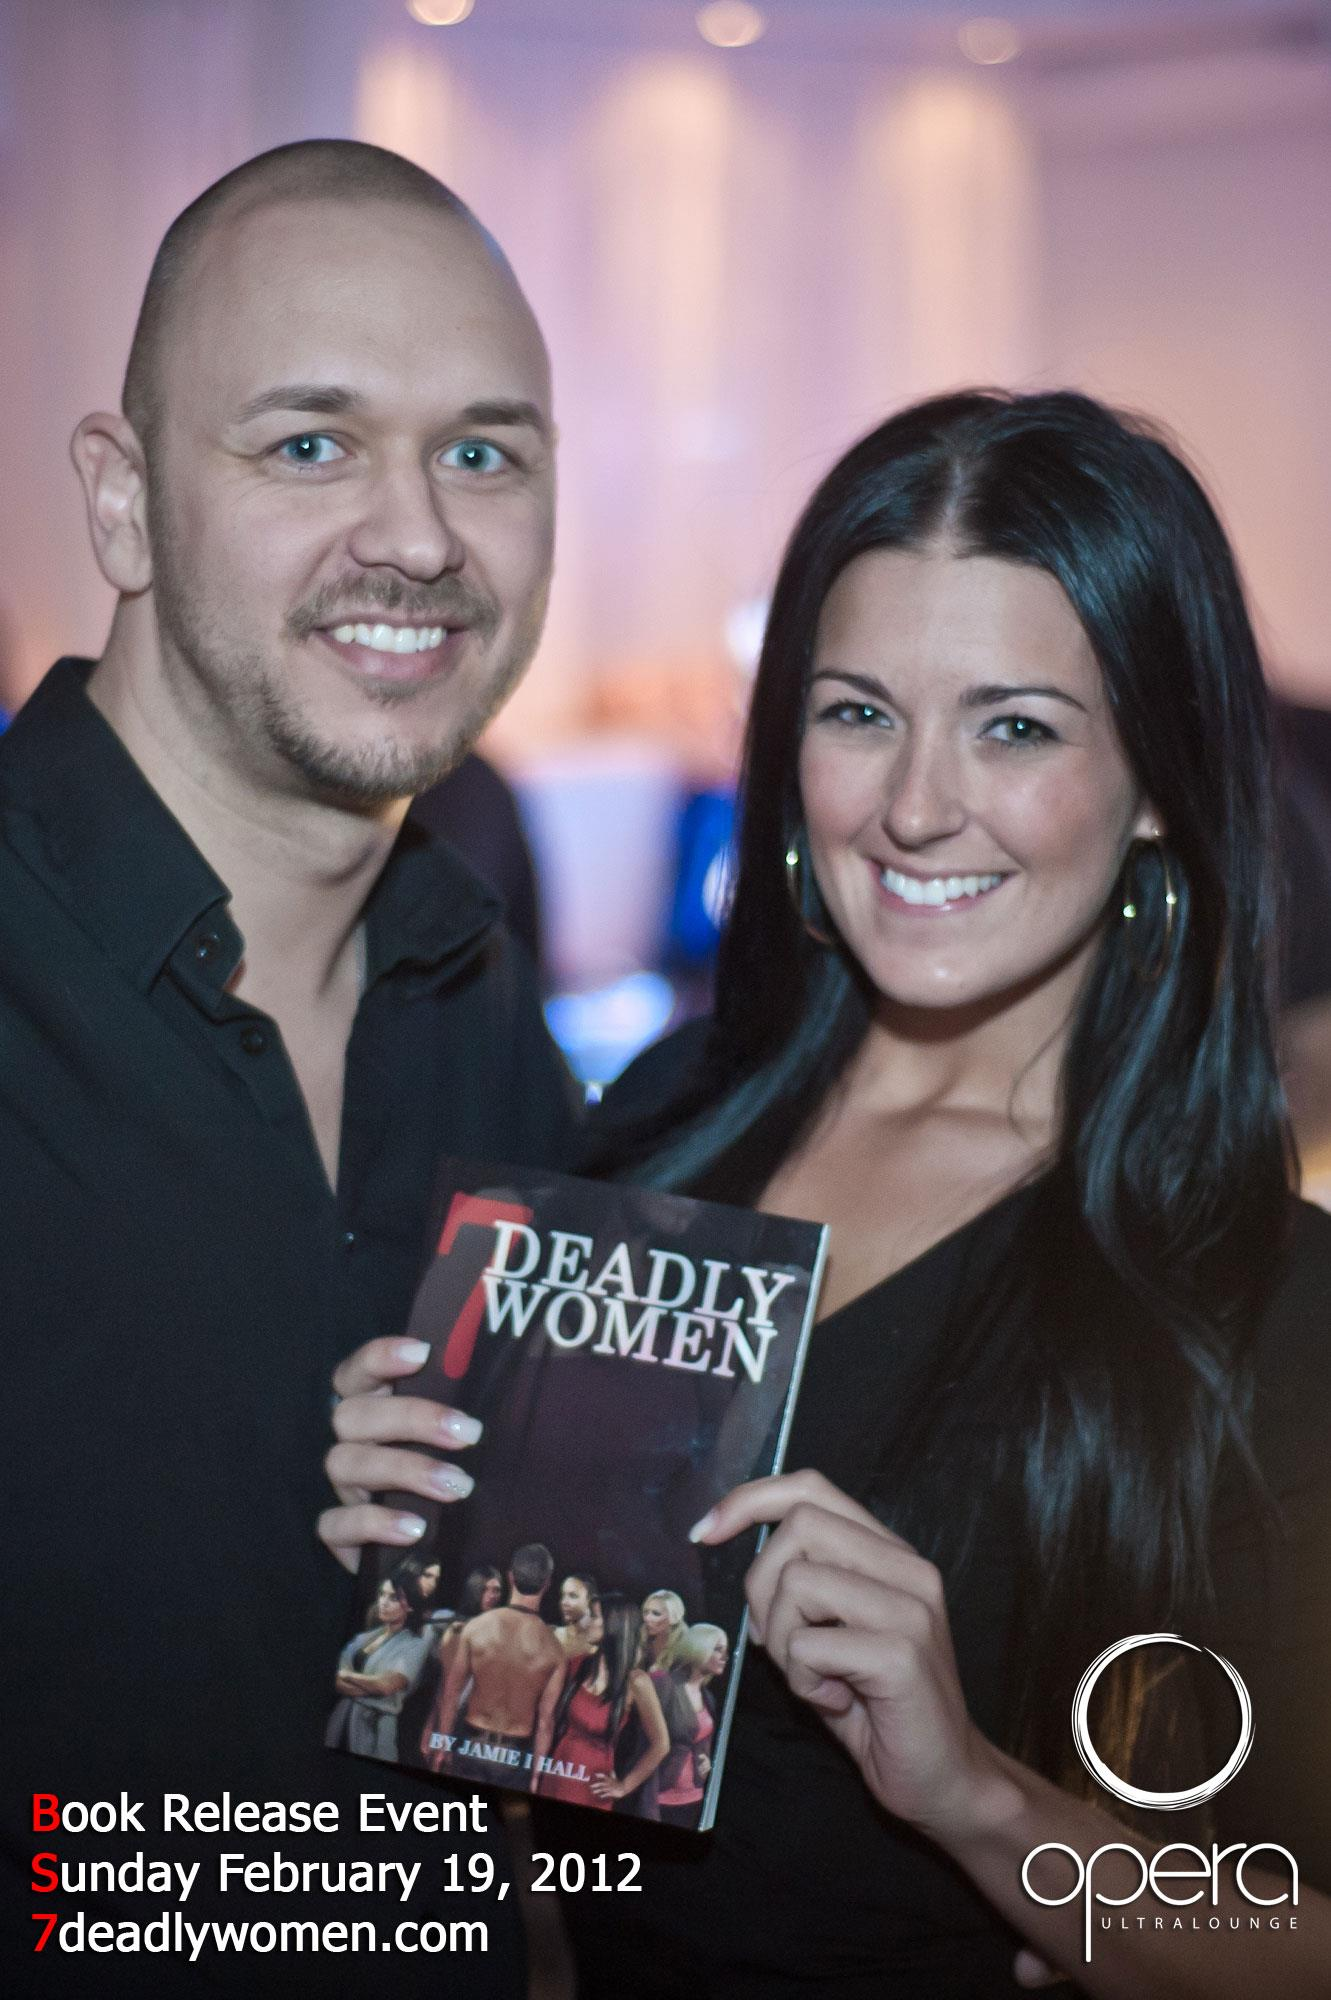 7 Deadly Women: A Book by Jamie Hall